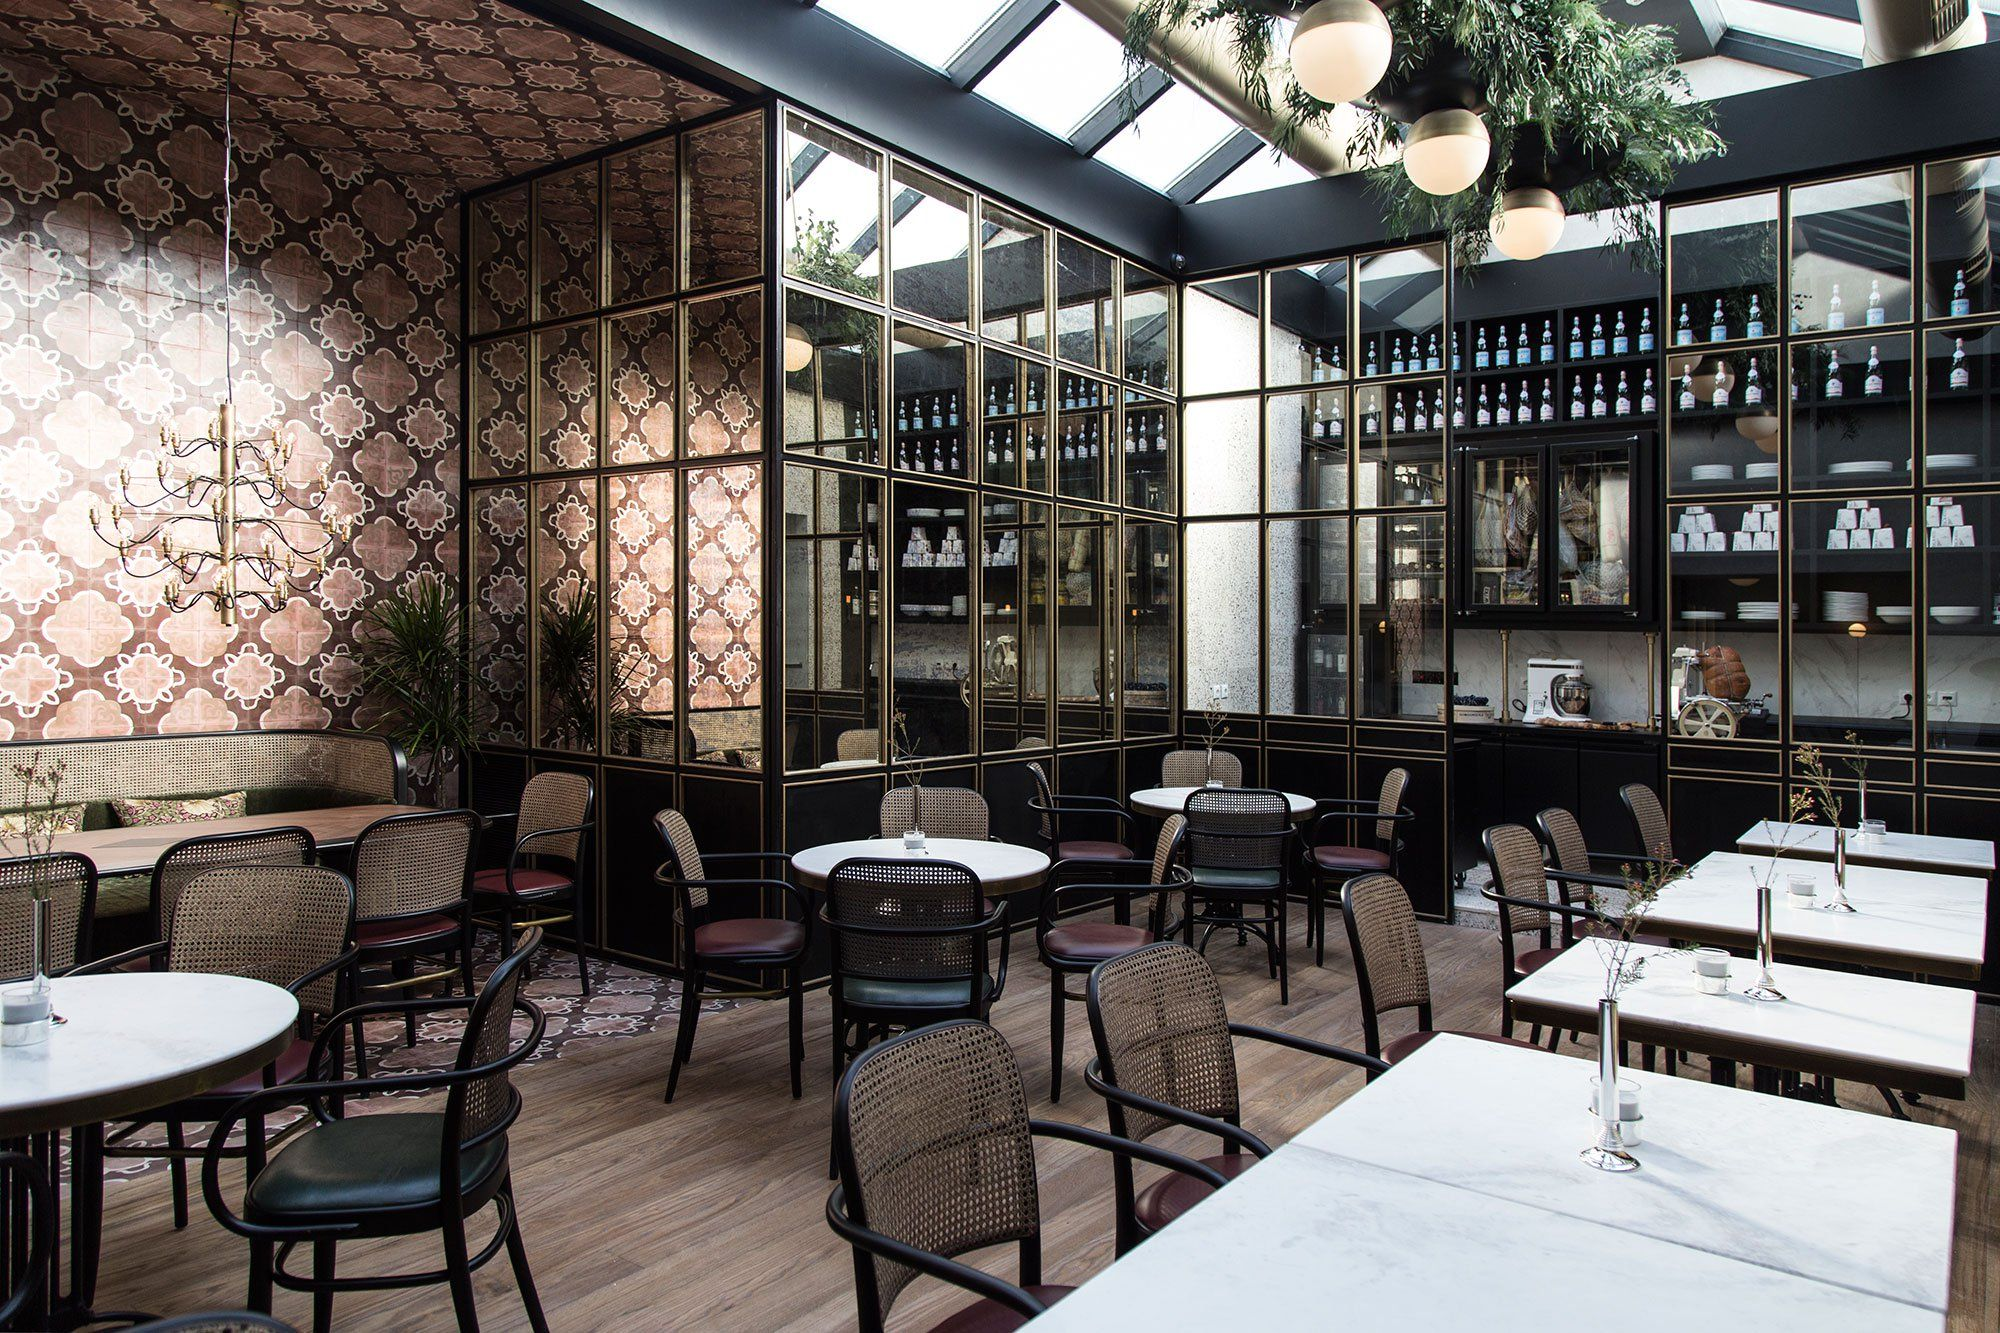 Papillon Channelling Flair Of Parisian Bistros In